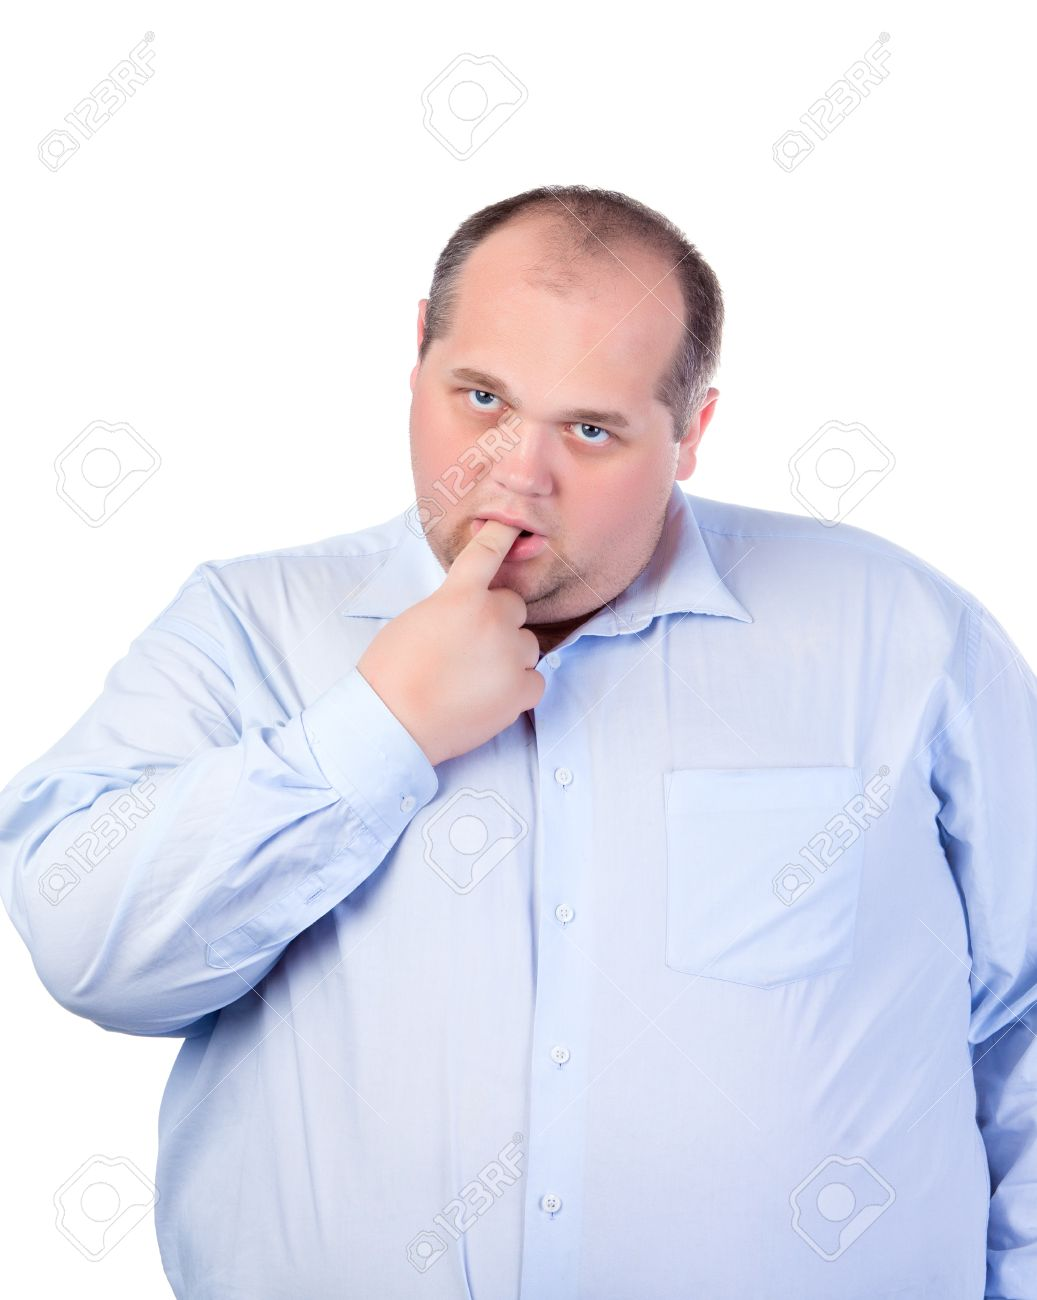 15200450-Fat-Man-in-a-Blue-Shirt-Thumb-S